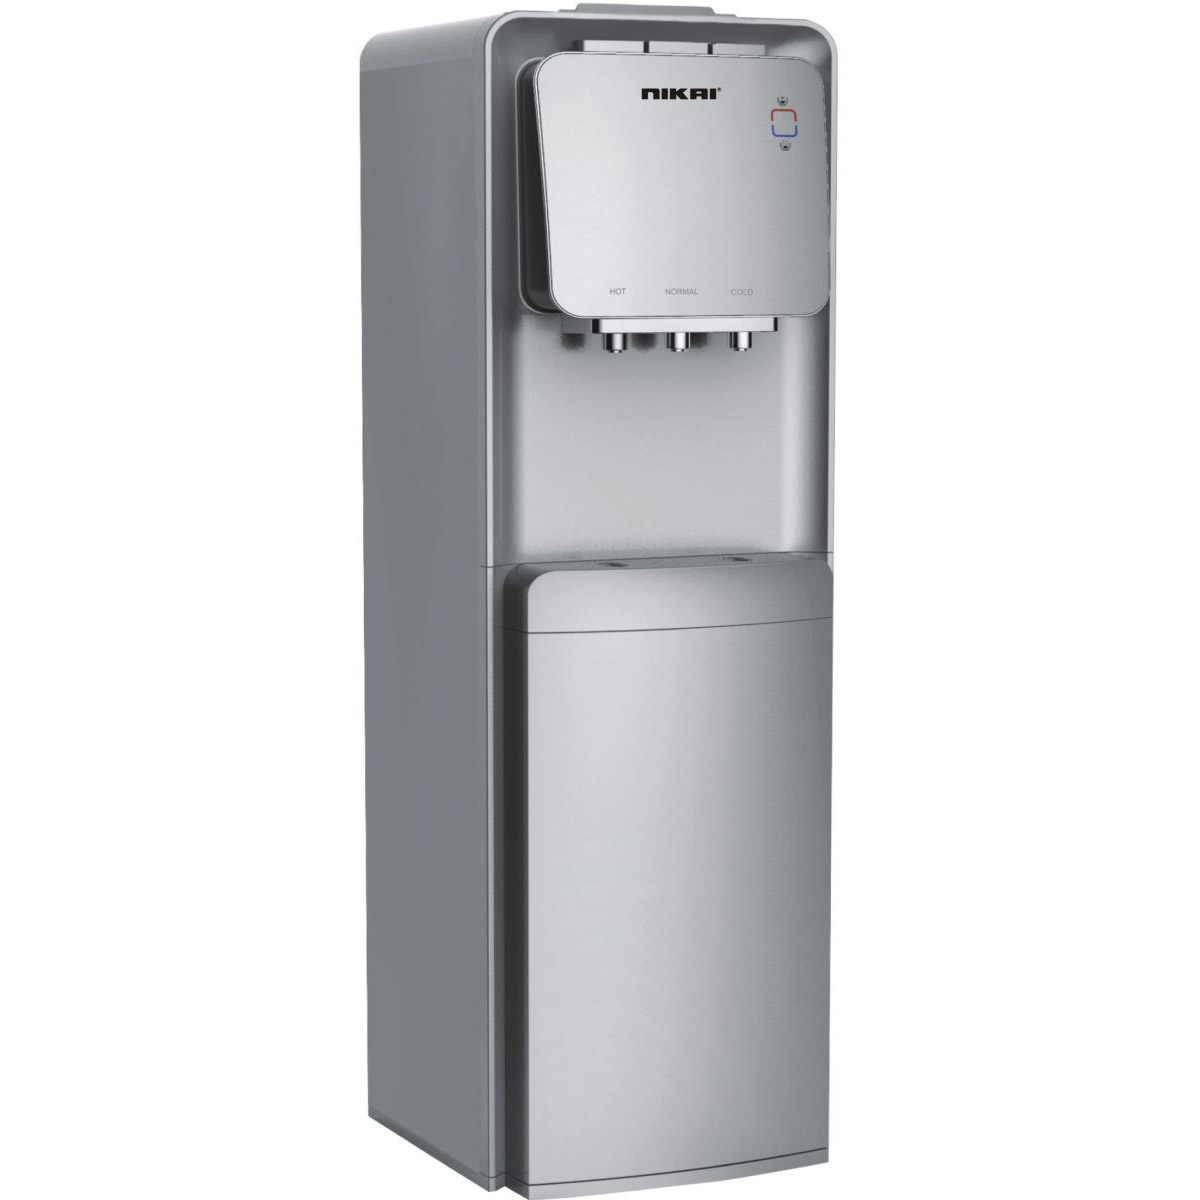 Nikai Water Dispenser with Refrigerator Premium Series NWD1300RS - Silver